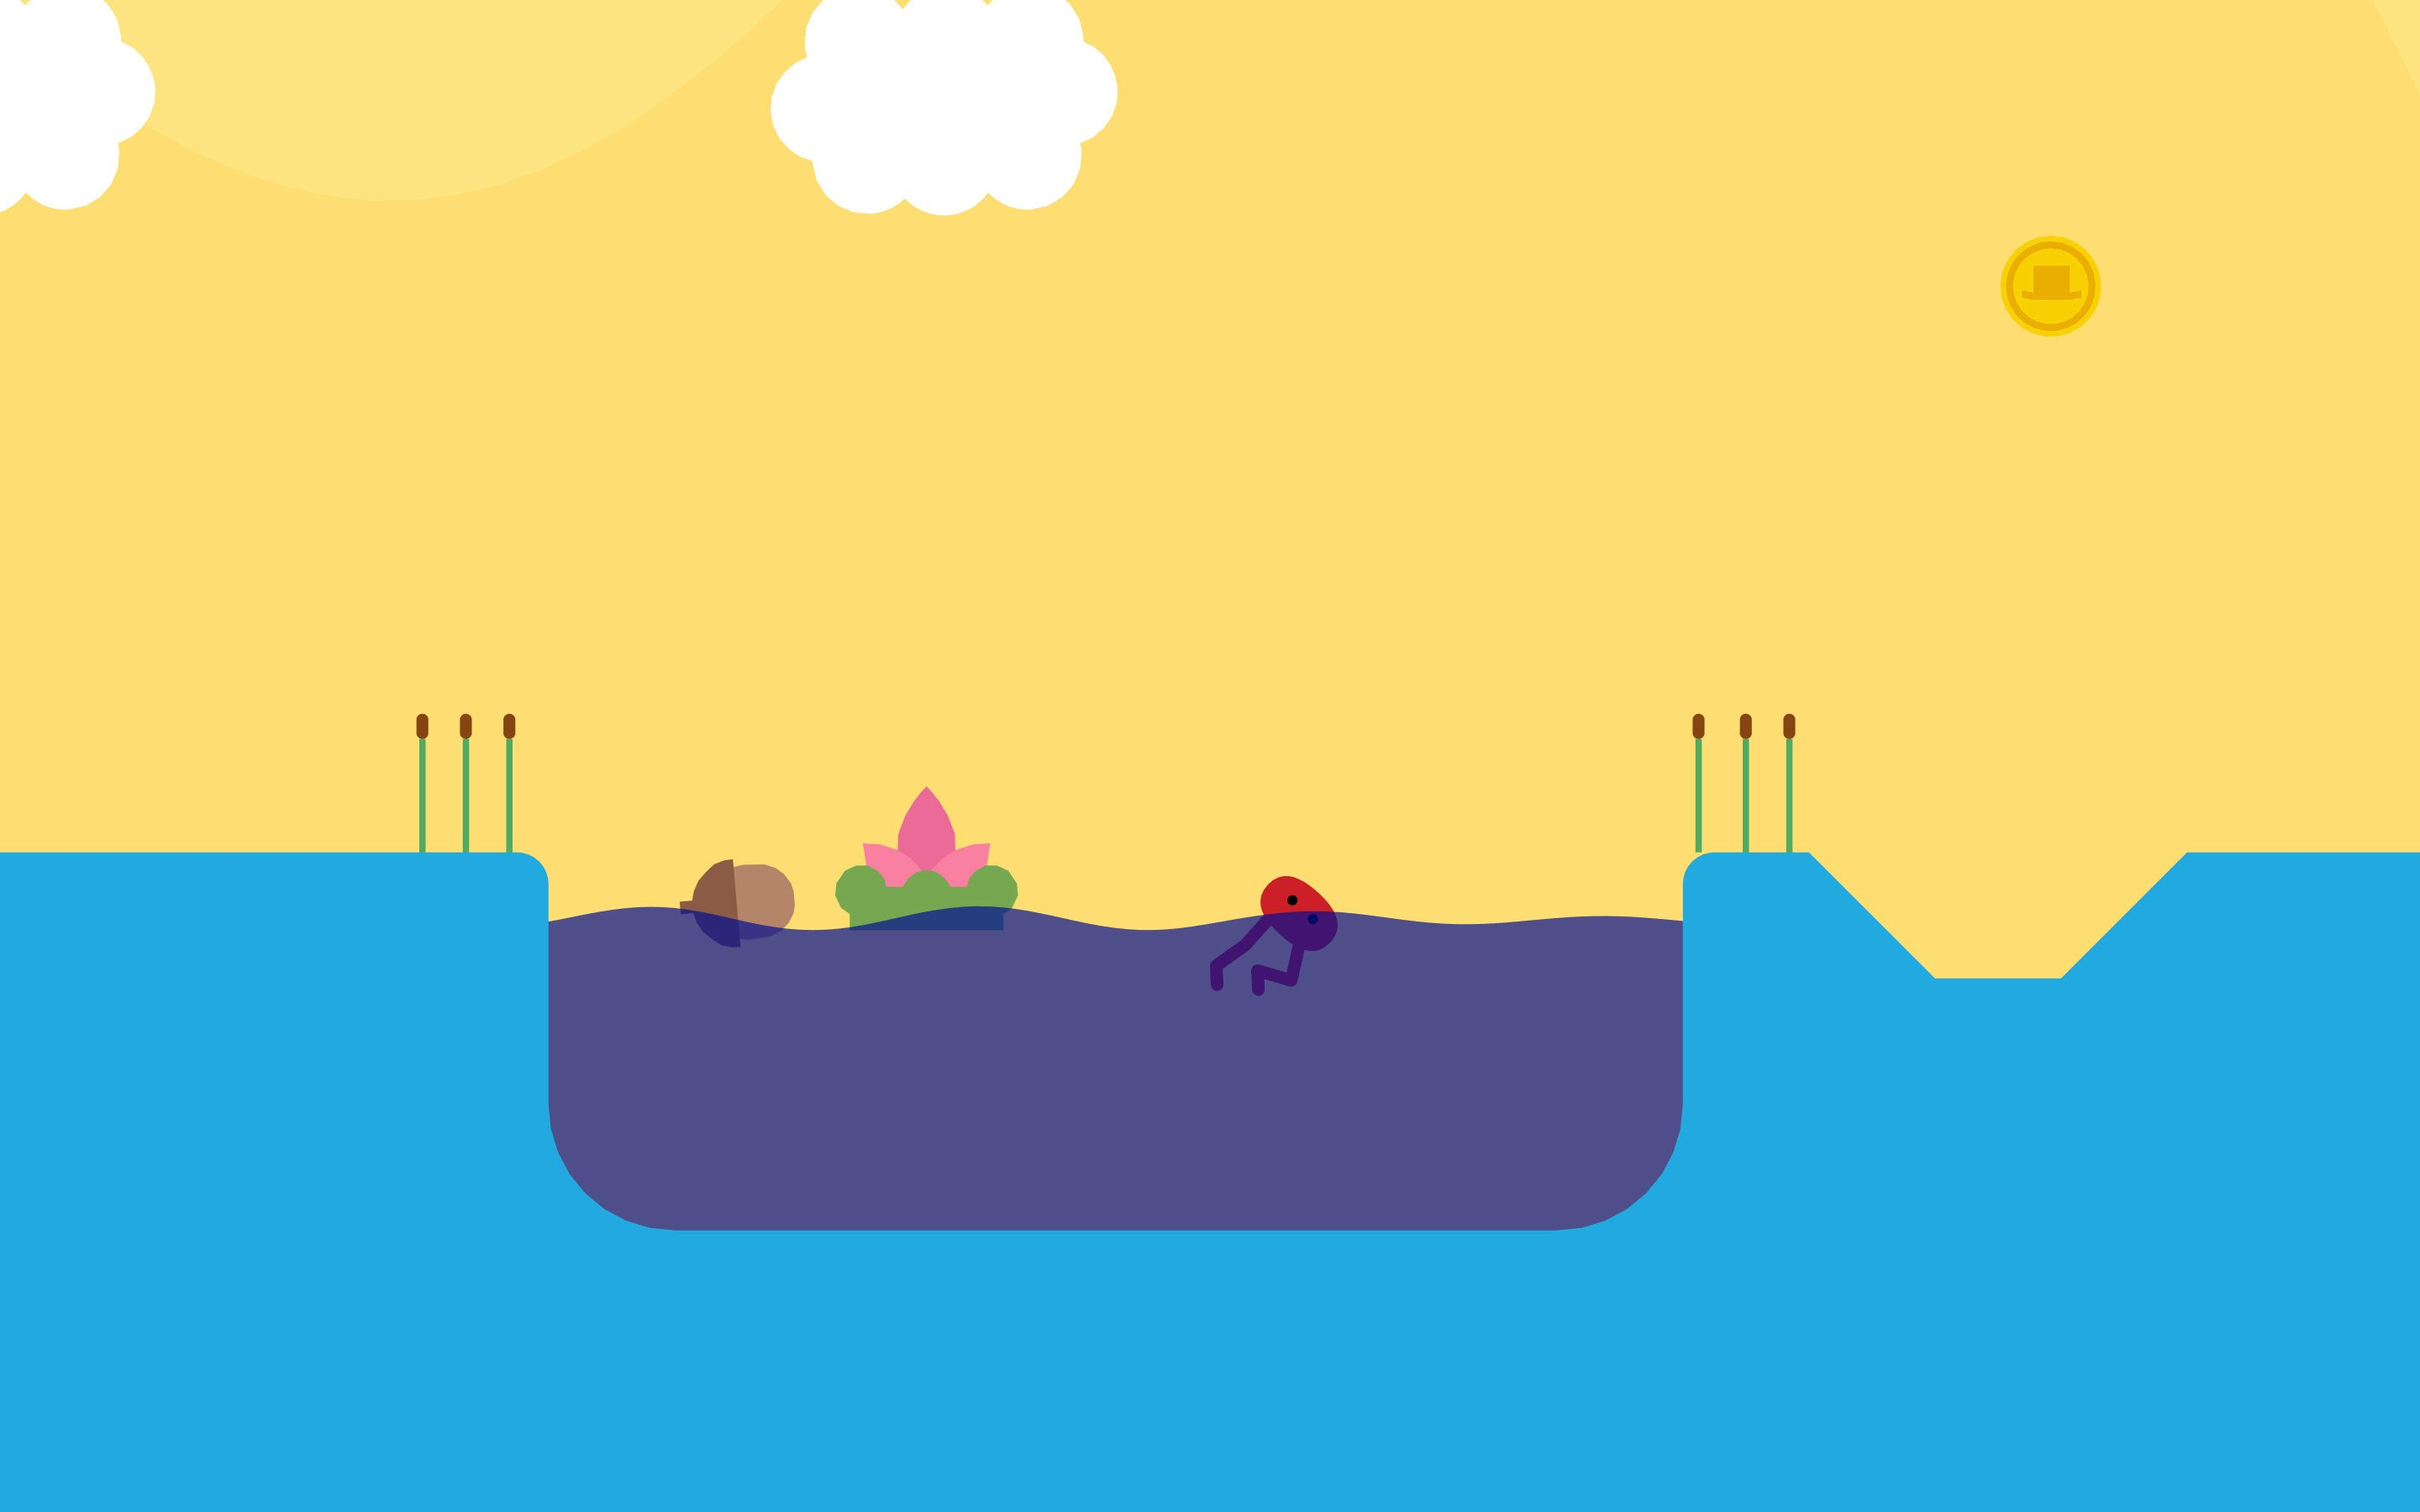 You can go for a dip in Pikuniku